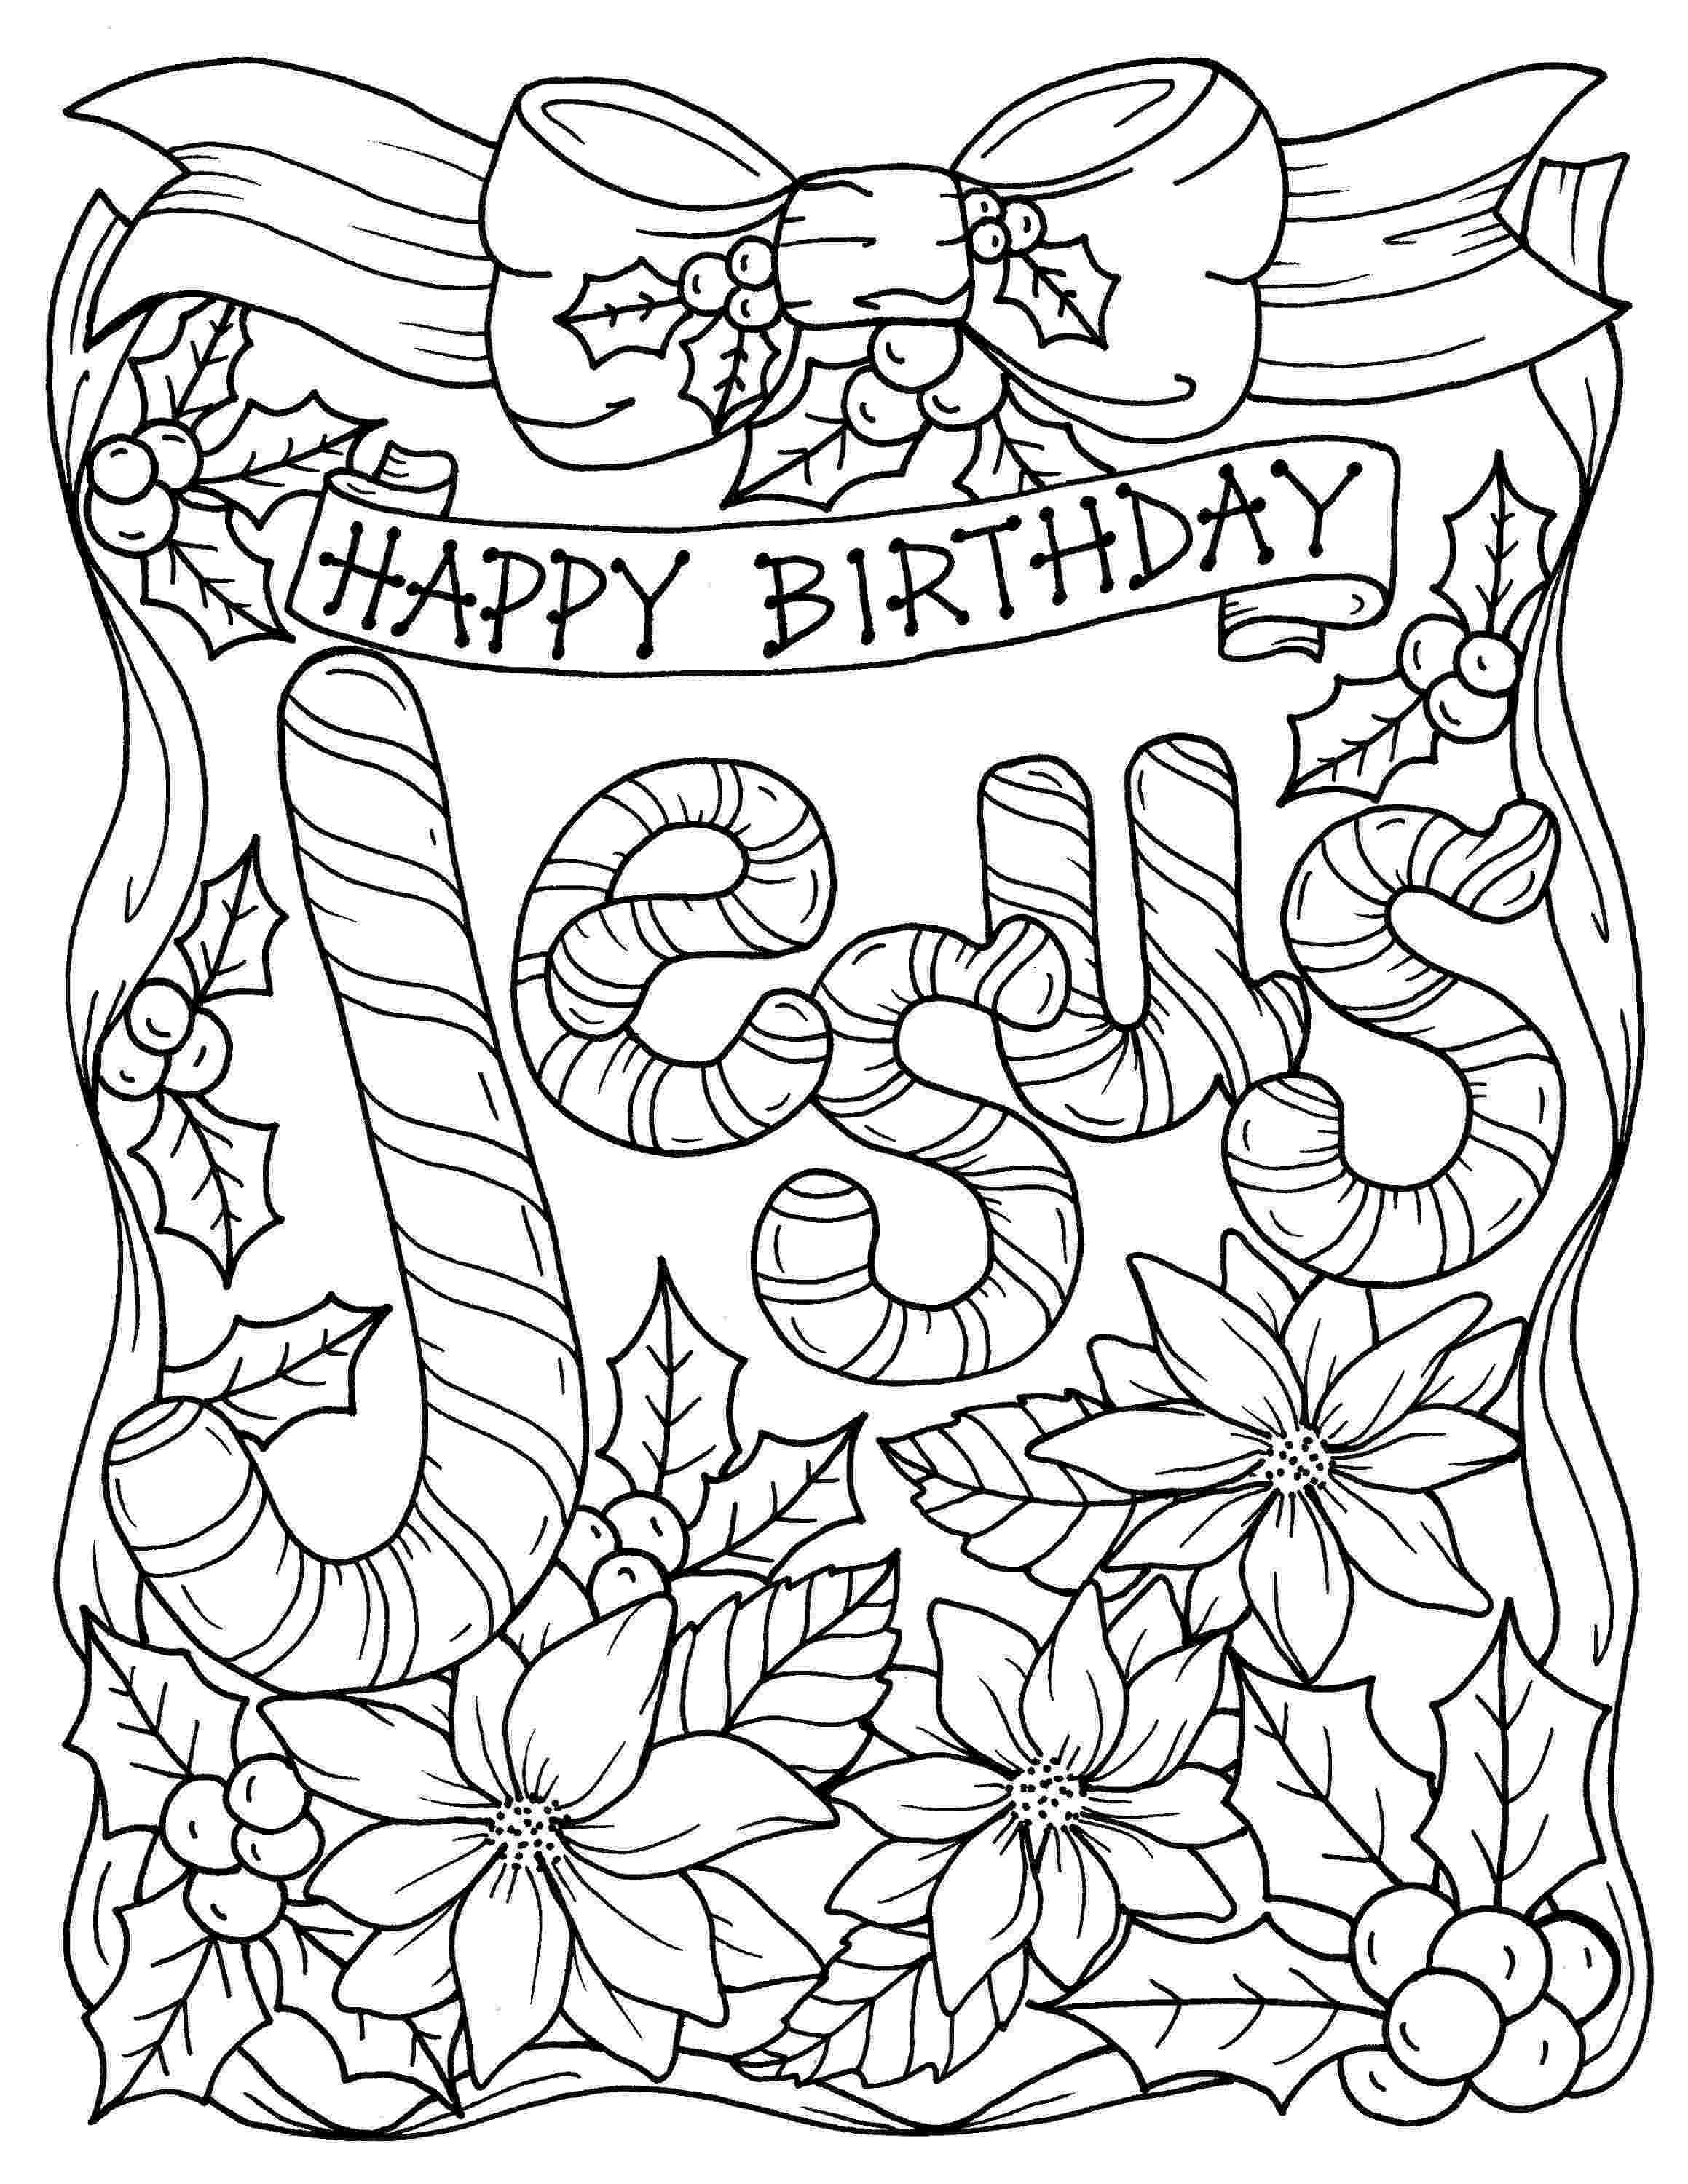 christian christmas coloring sheets 5 pages christmas coloring christian religious scripture coloring christmas christian sheets